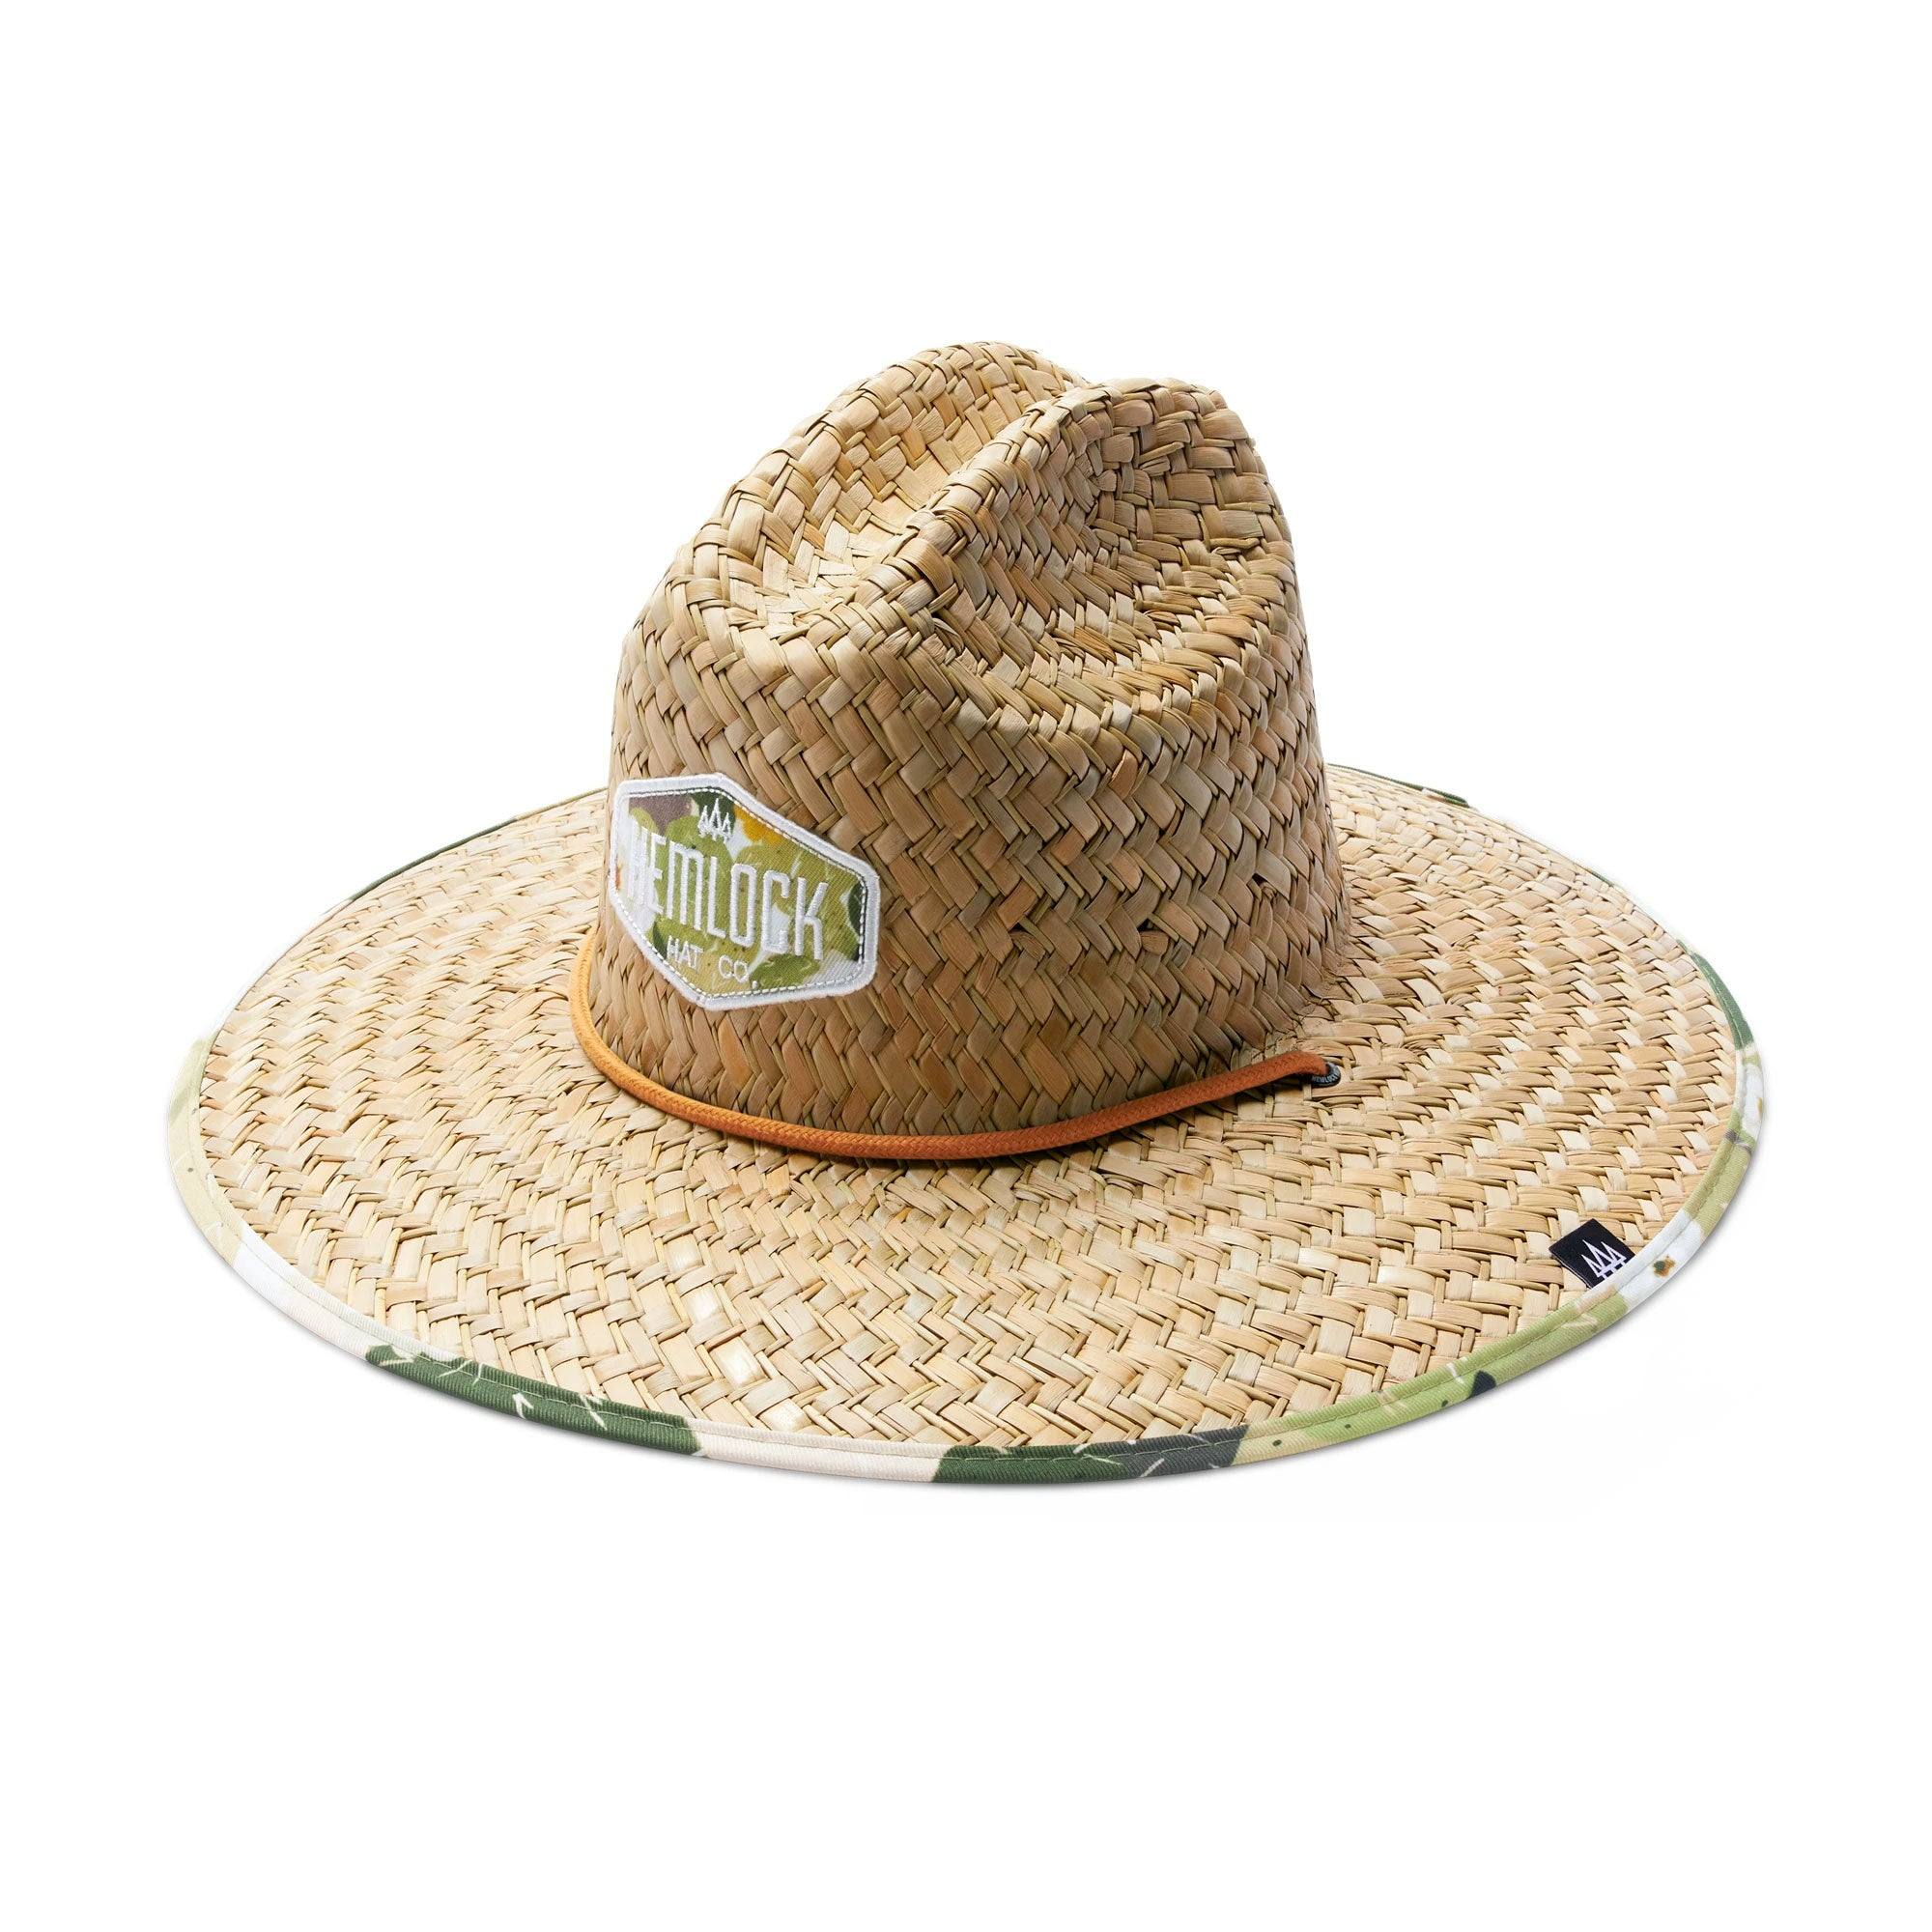 Hemlock Hat Co. Sonora Straw Hat